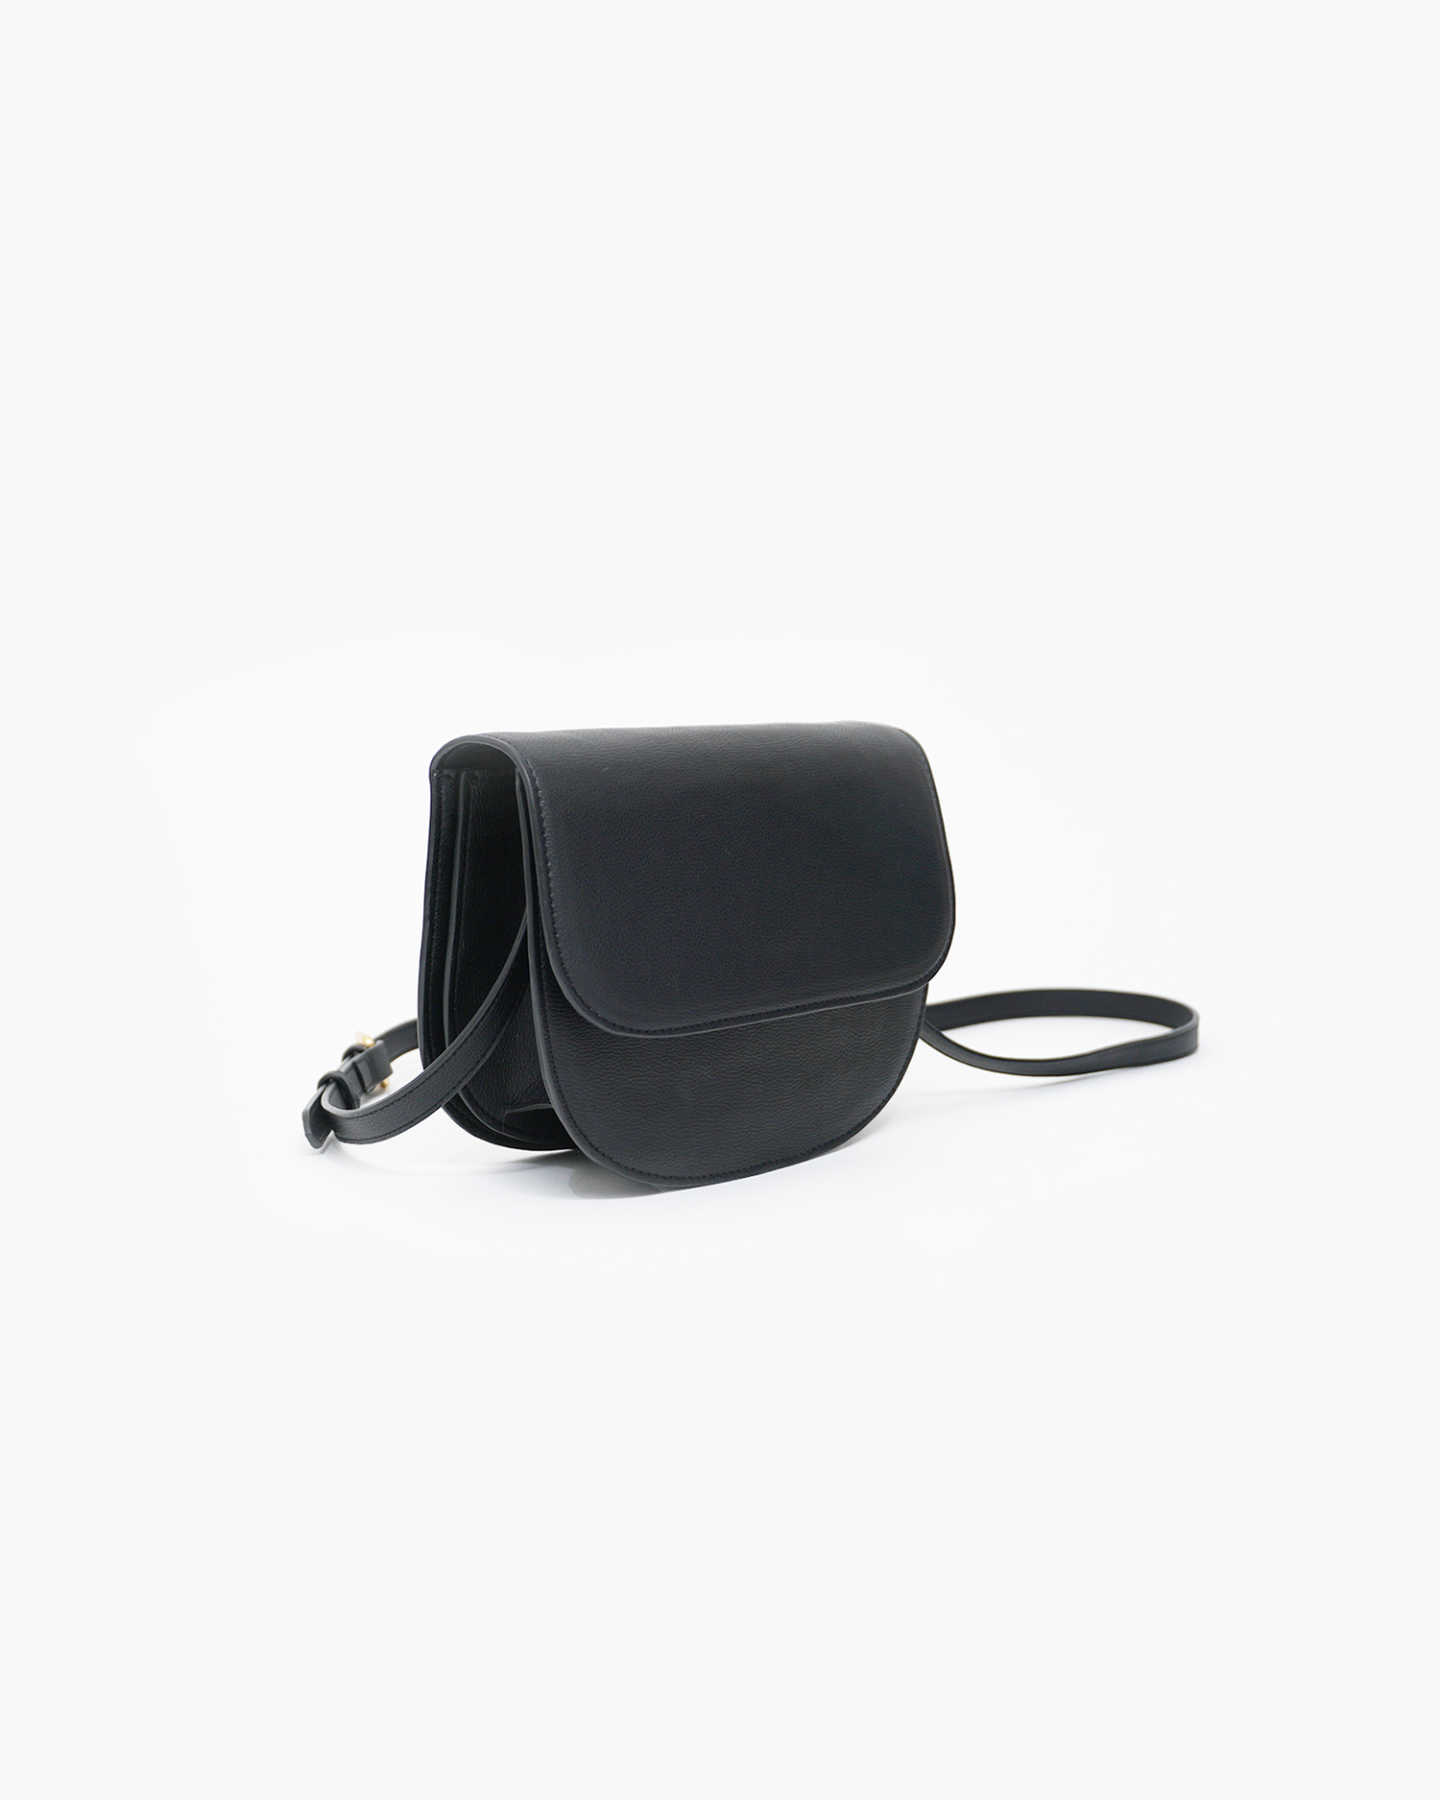 Vegan Saddle Bag - Black - 1